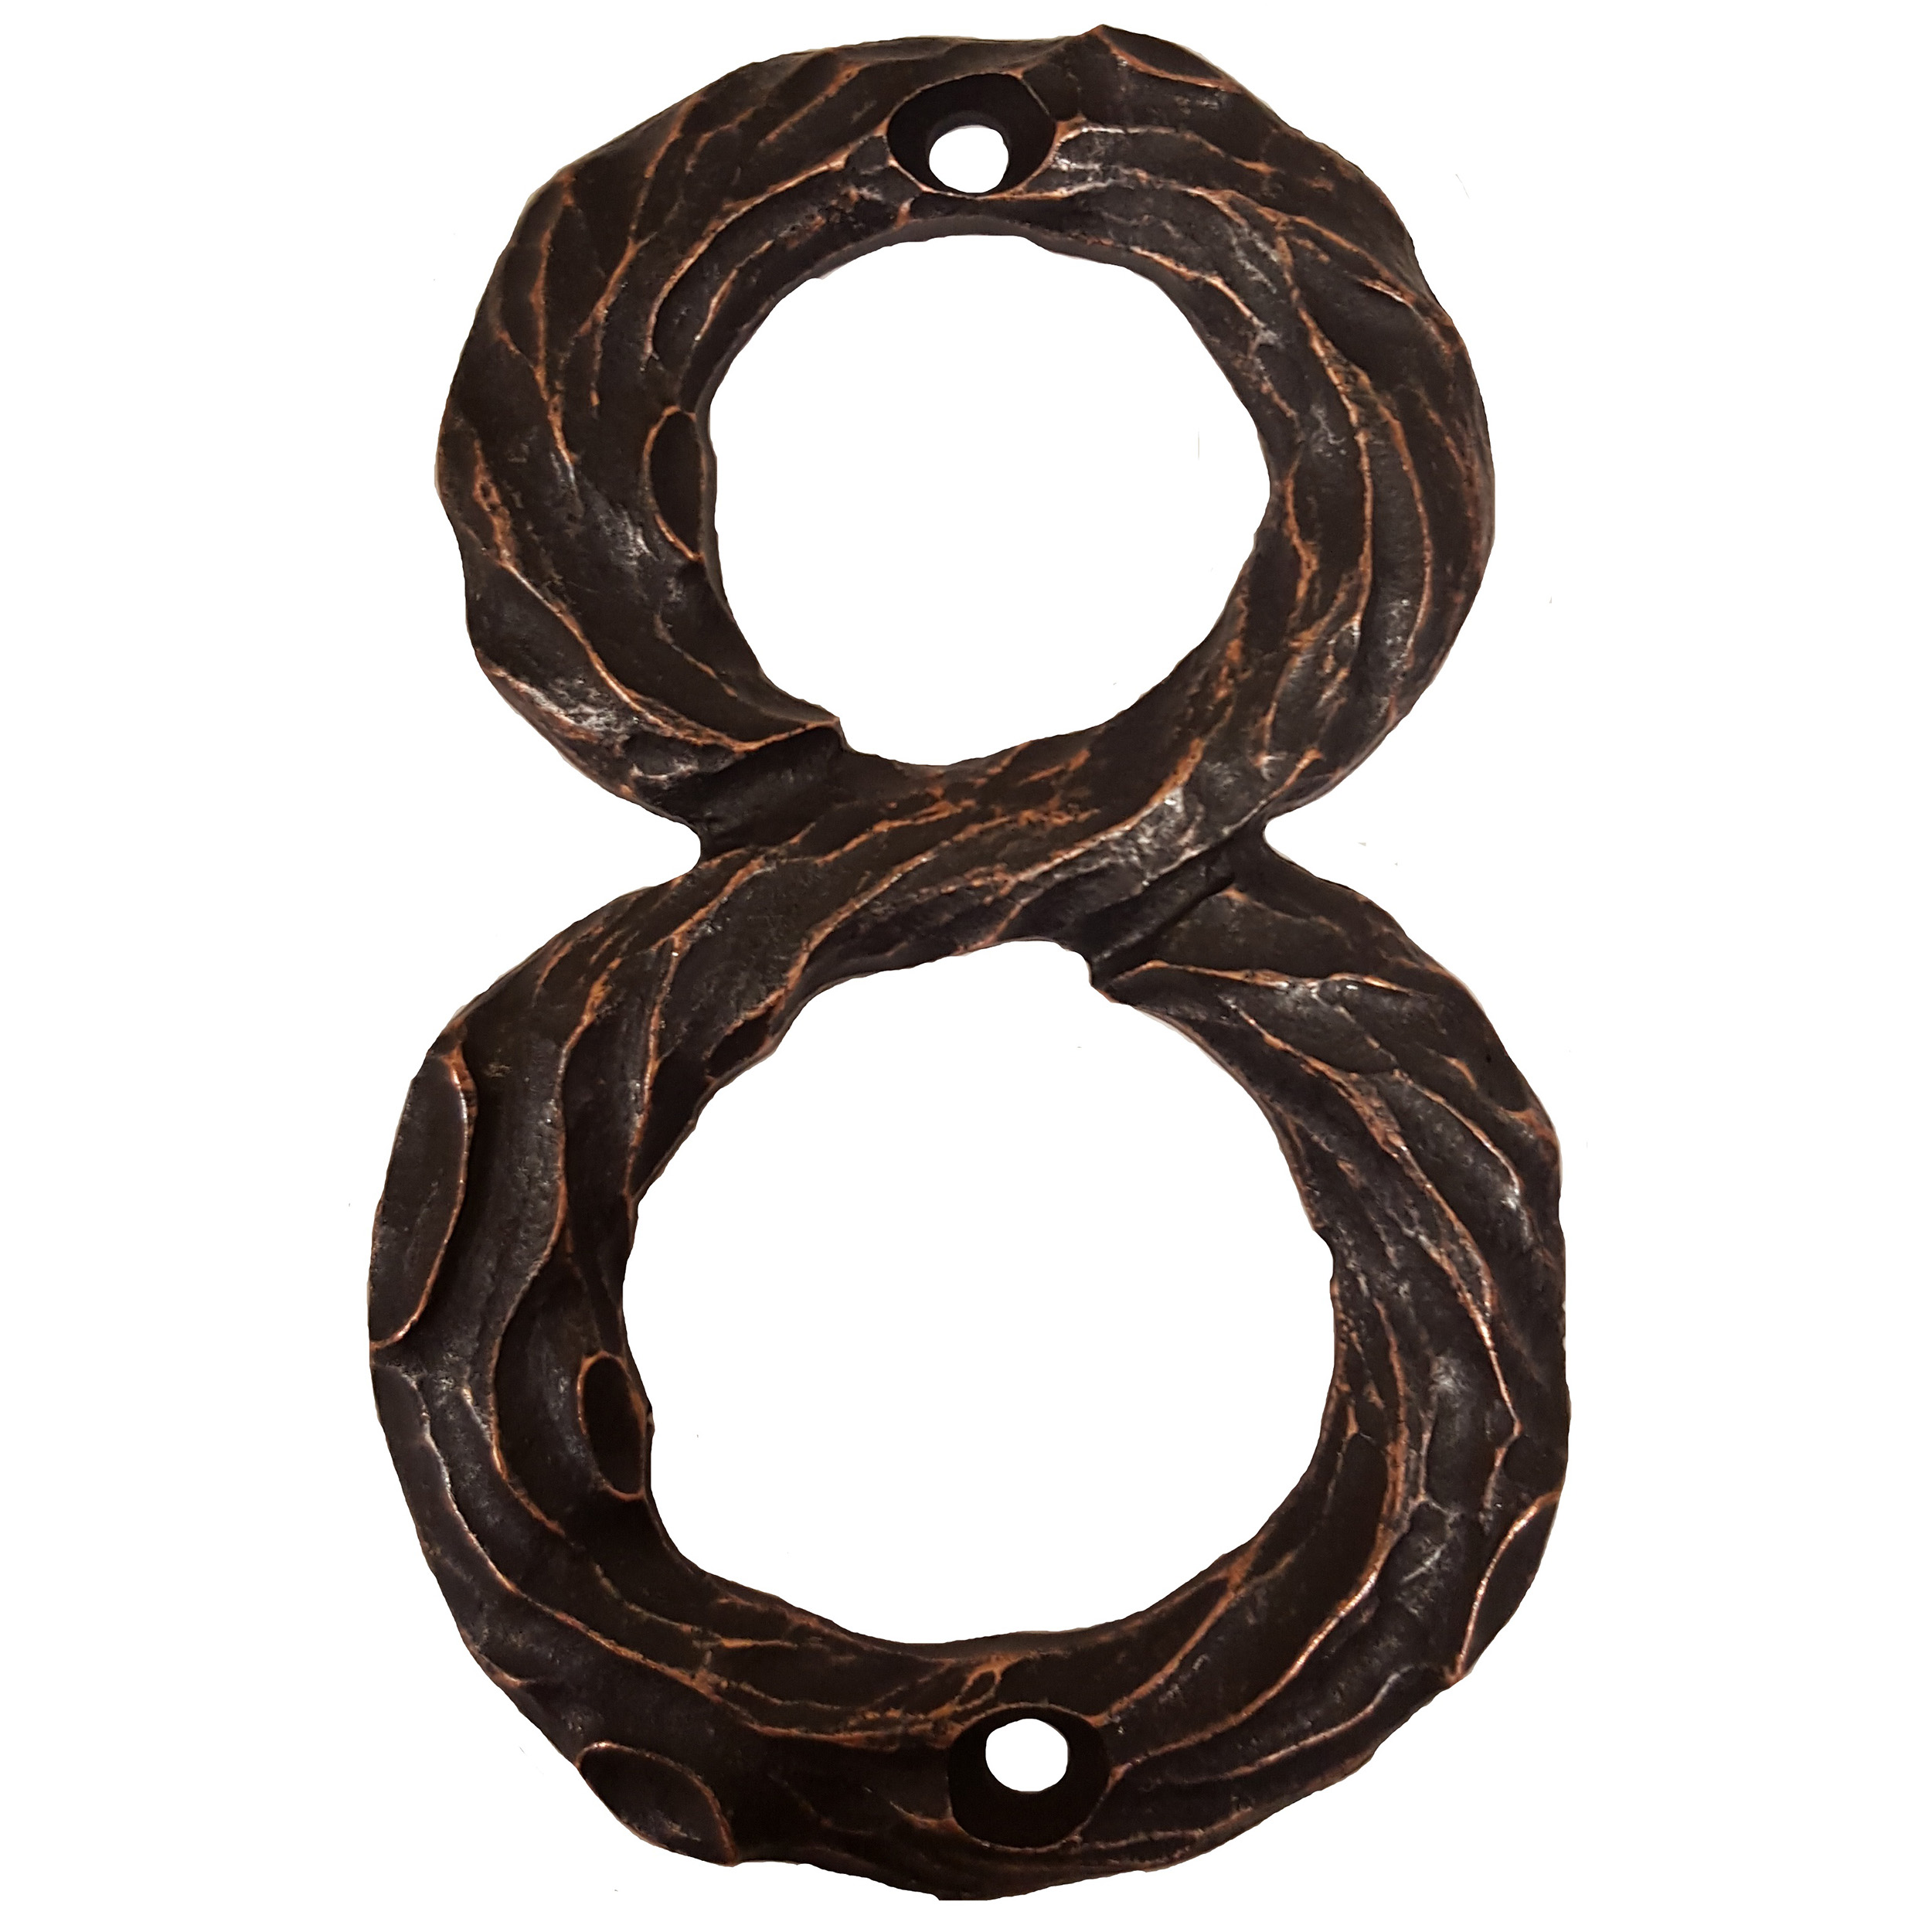 LHN8-ORB Log House Number 8, Oil Rubbed Bronze, 1 piece